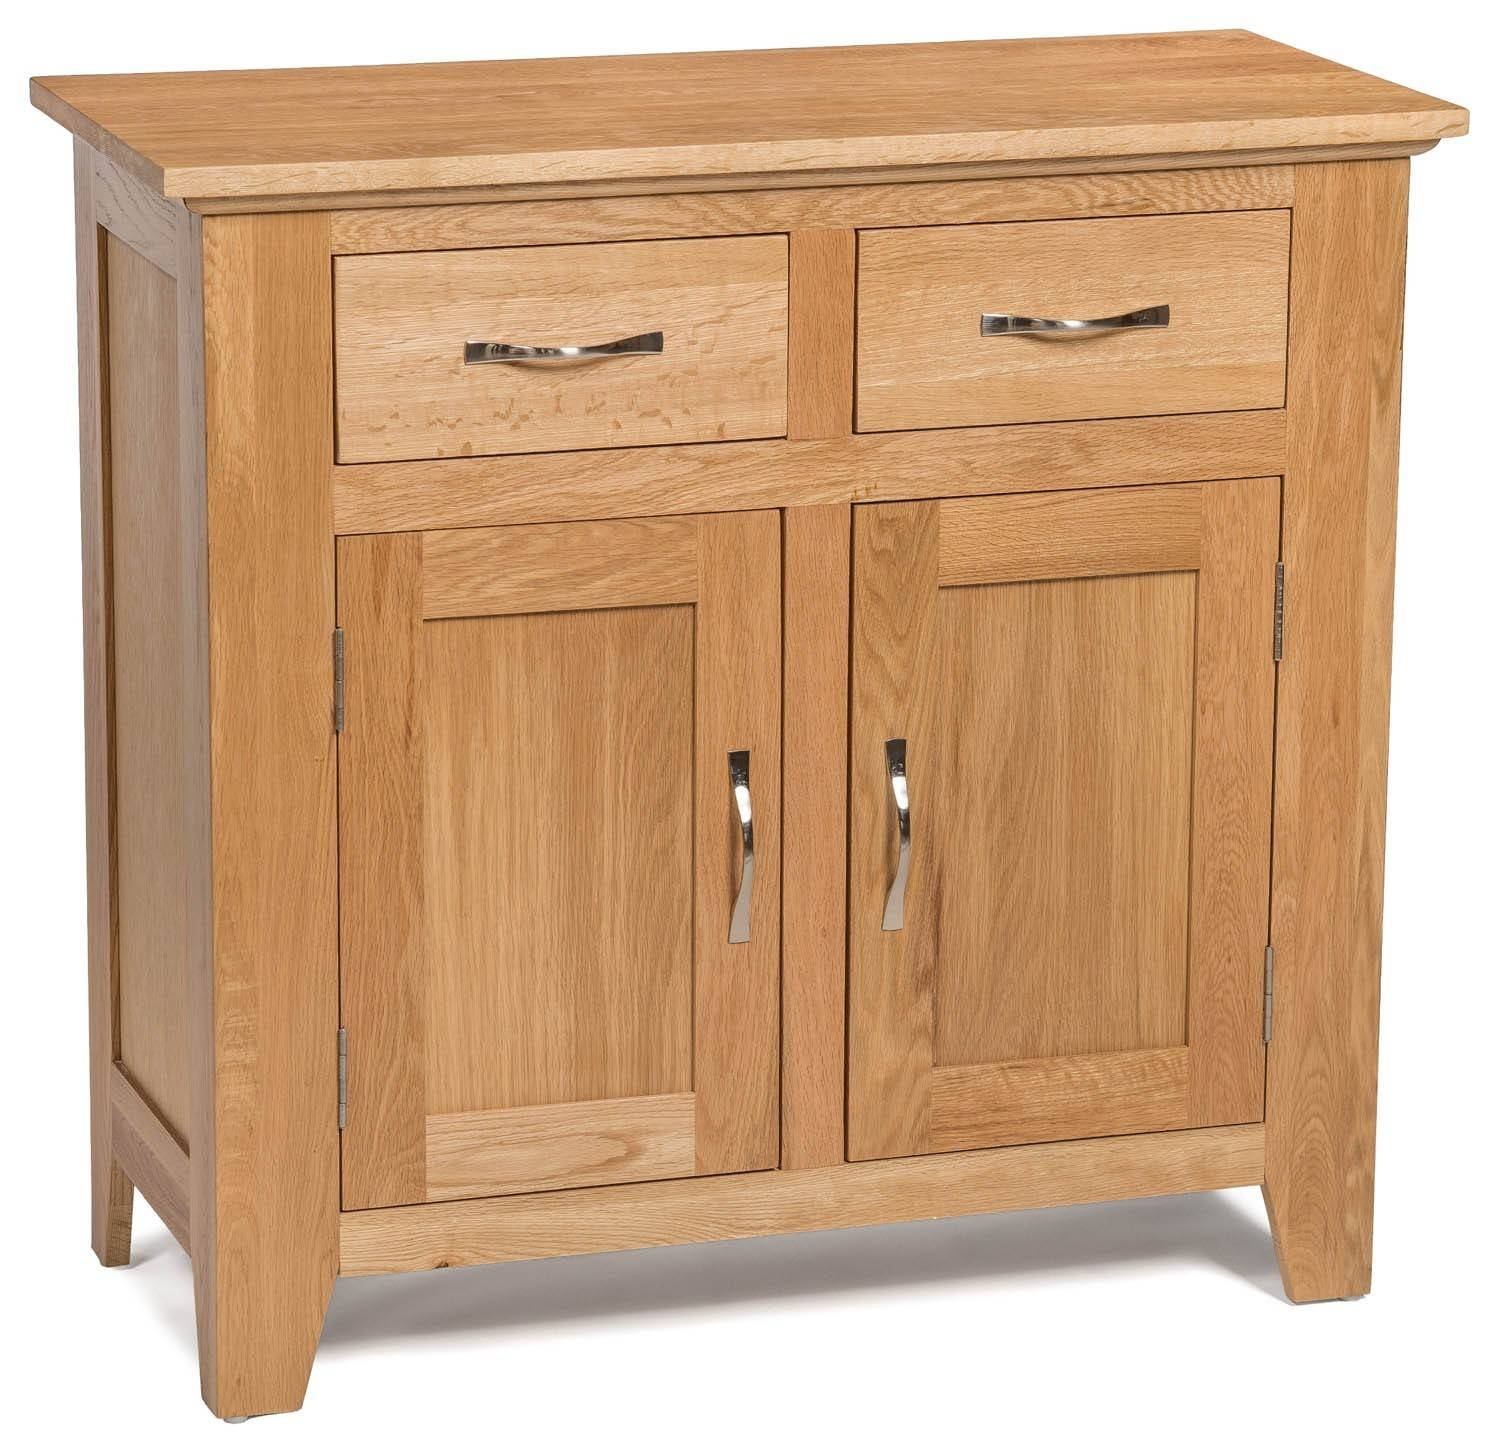 Camberley Oak Small 2 Door 2 Drawer Sideboard - Sideboards & Tops with Light Oak Sideboards (Image 3 of 30)